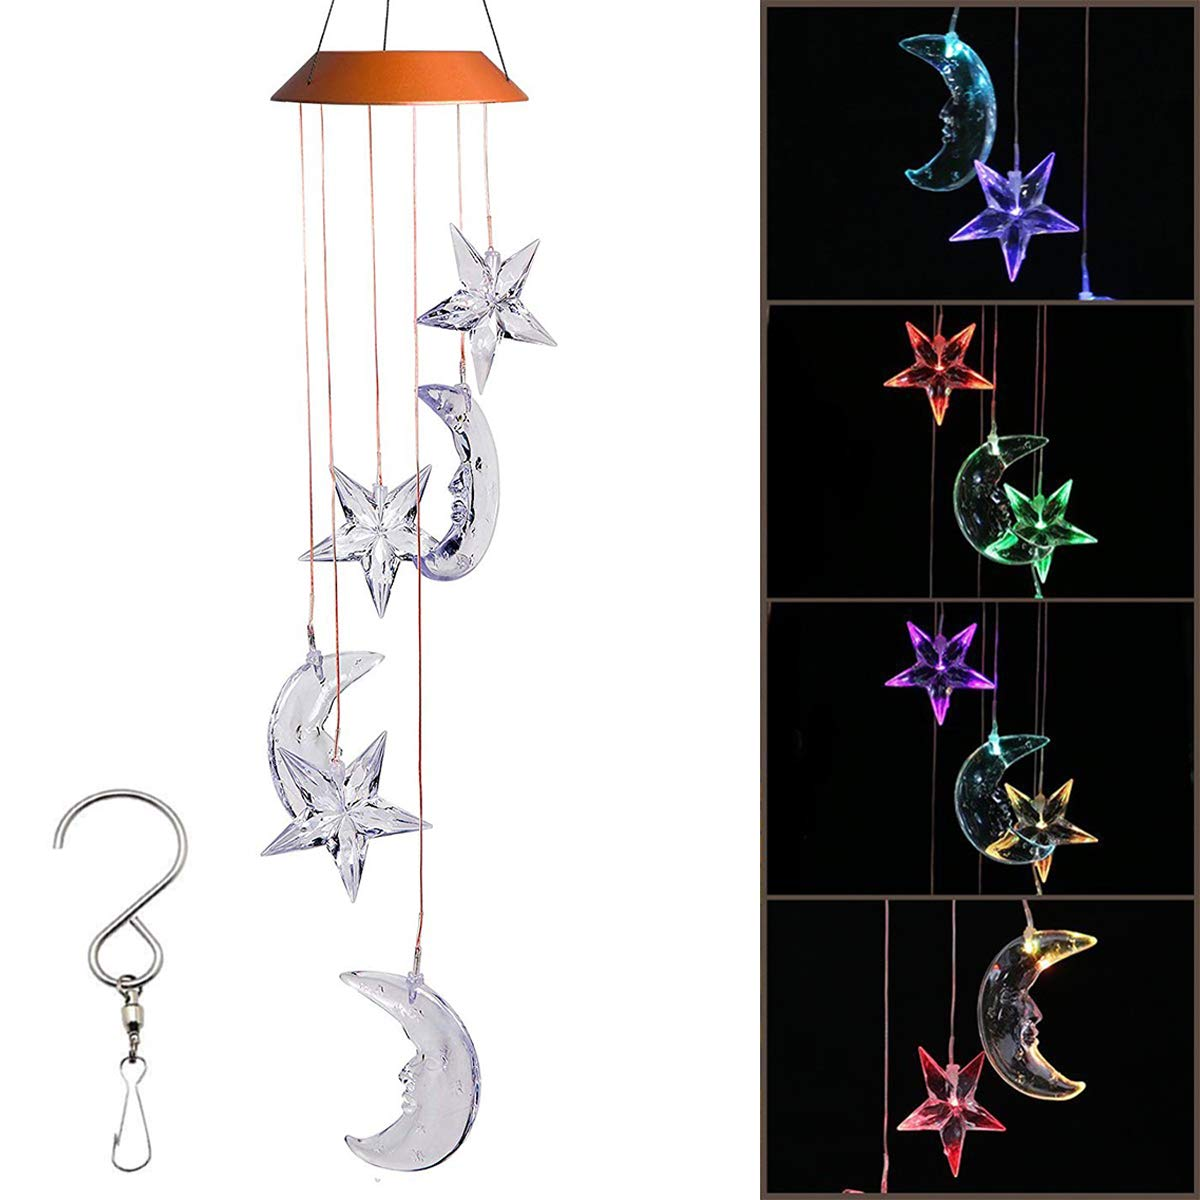 Stormshopping LED Solar Moon and Star Wind Chime, Changing Color Waterproof Six Hanging Lights Wind Chimes Solar Mobile for Home Party Night Garden Decoration by Stormshopping